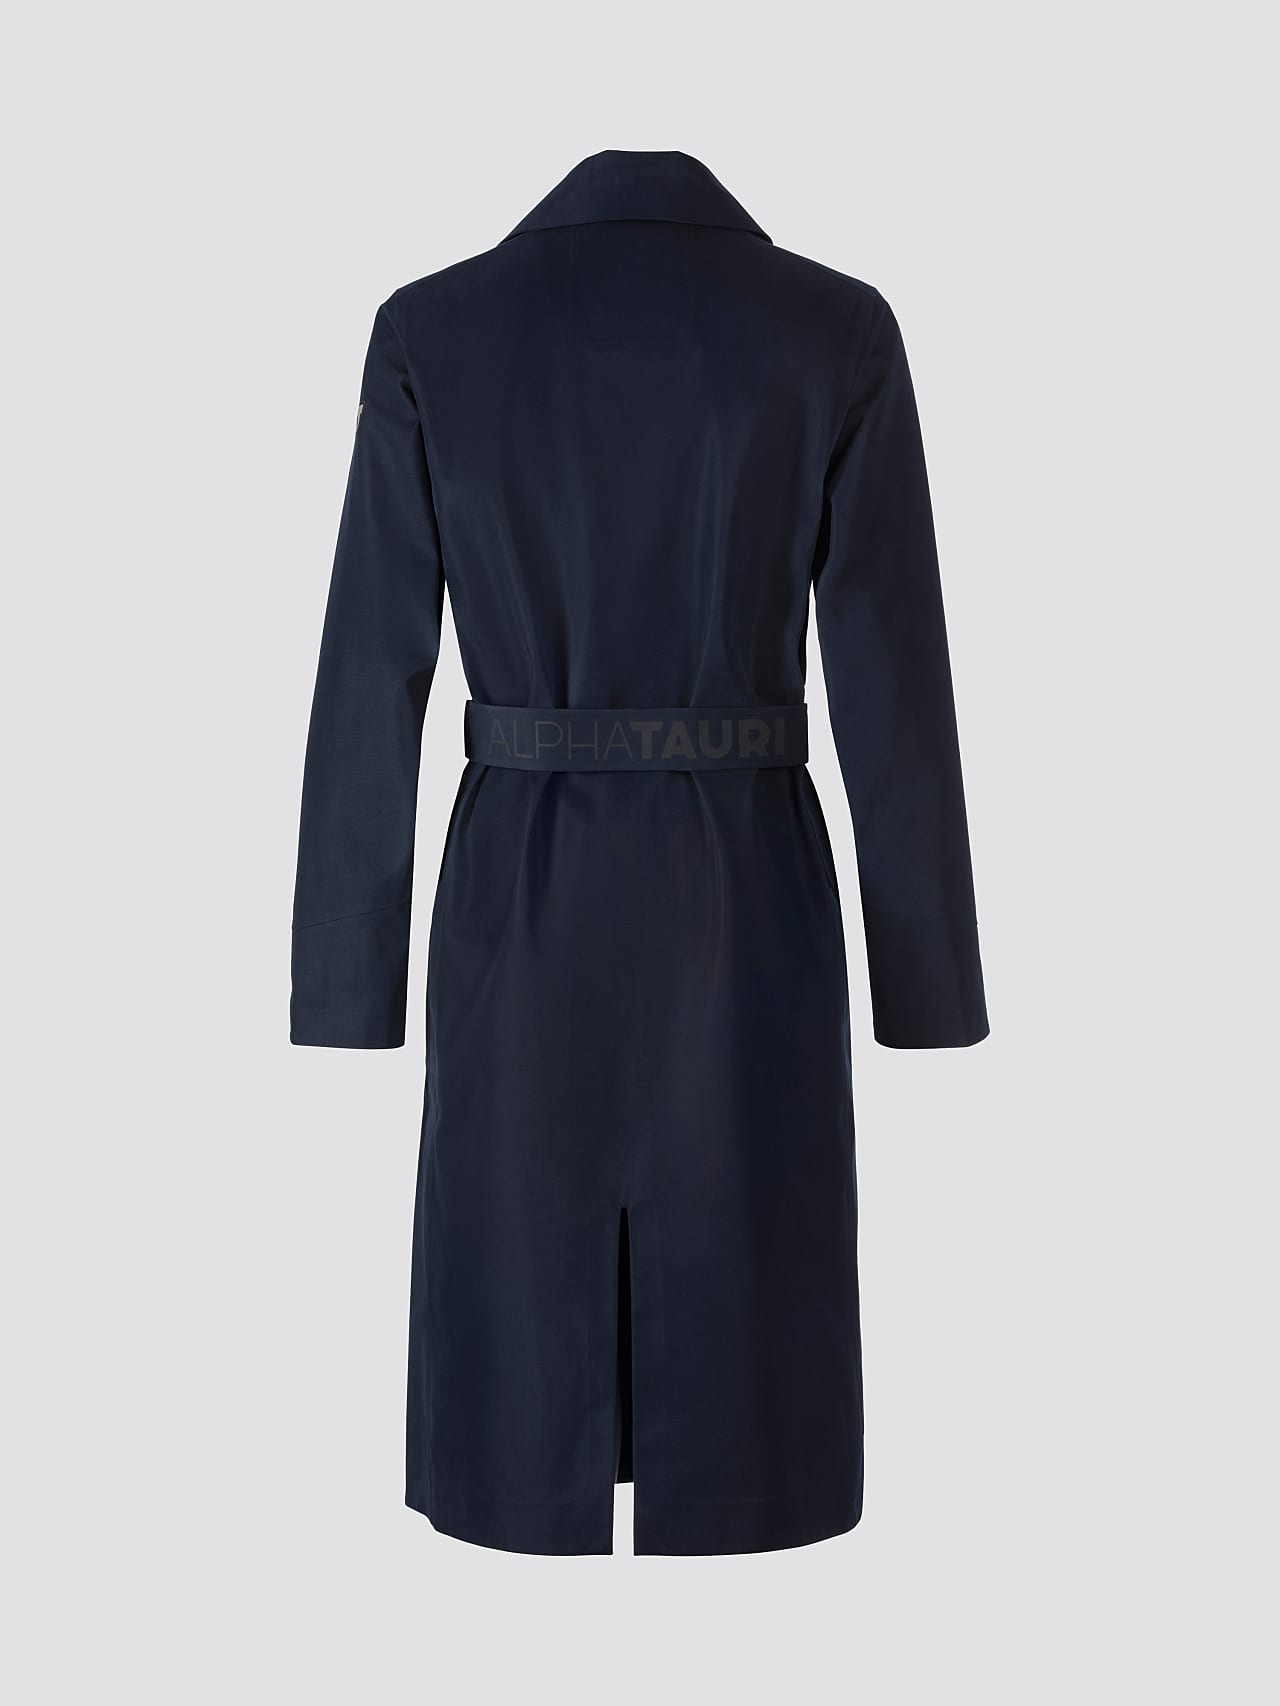 OZENZ V1.Y5.01 Packable Waterproof Trench navy Left Alpha Tauri